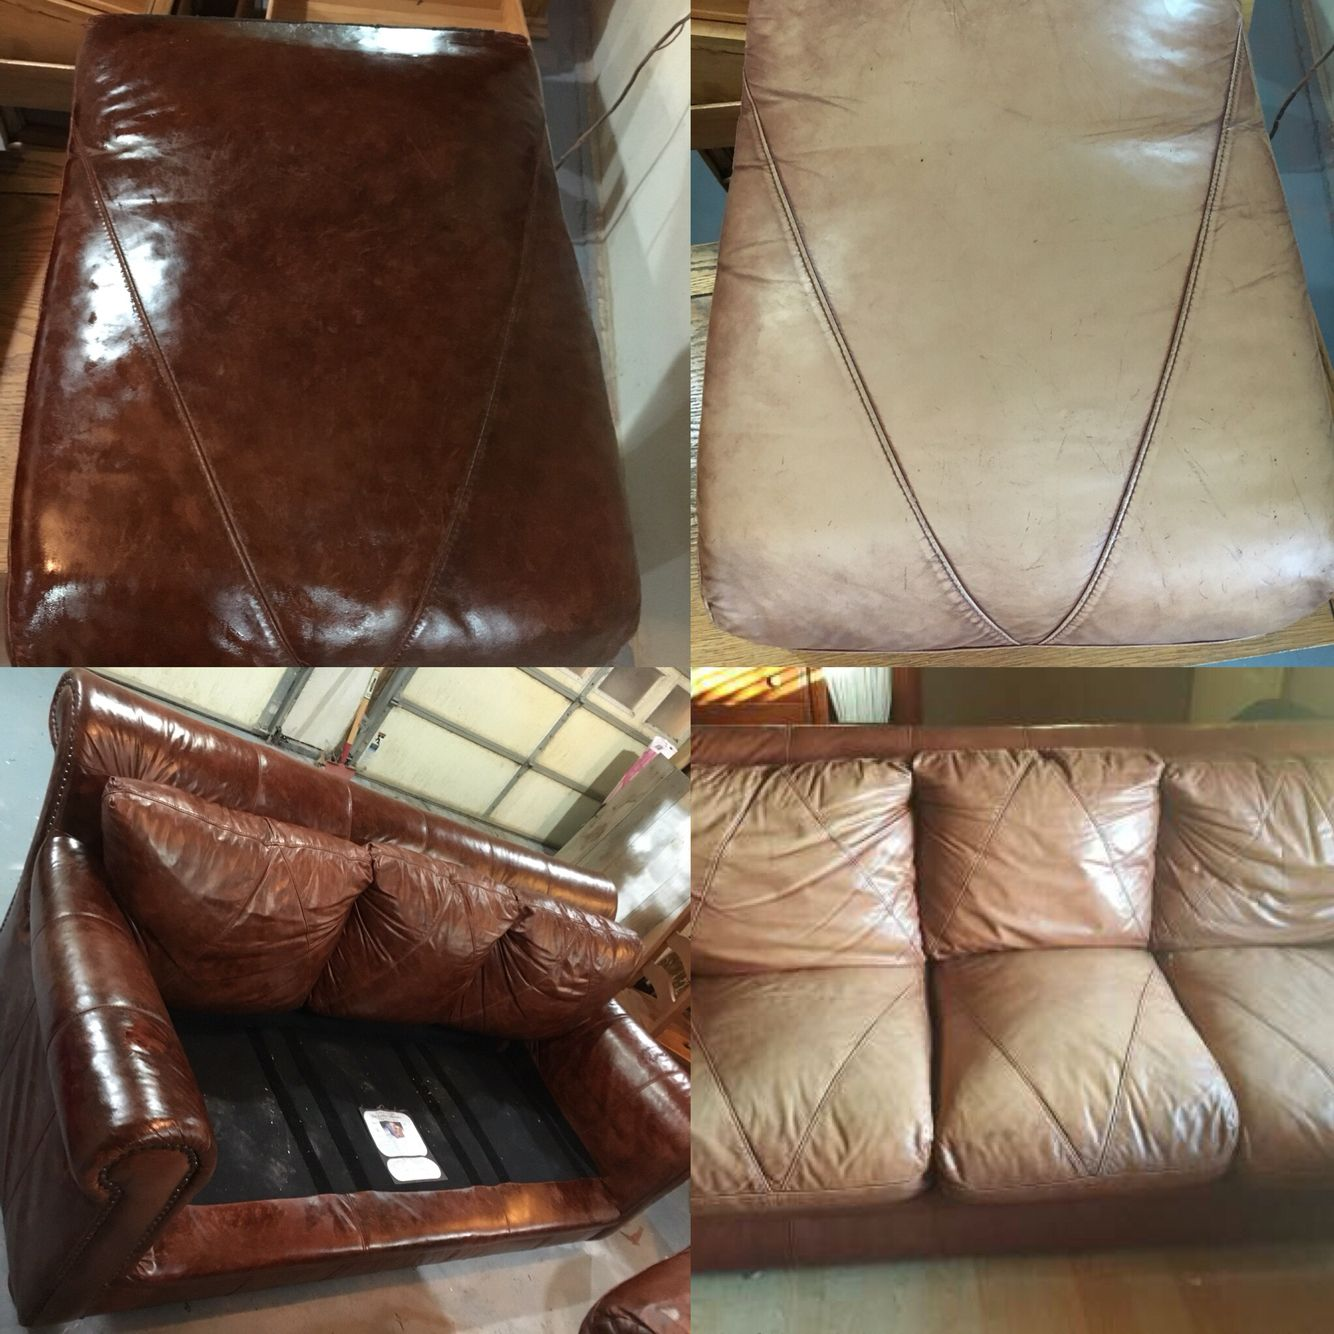 Conditioner For Leather Sofa: Leather Couch Rehabilitation With Dye + Conditioner + Hole